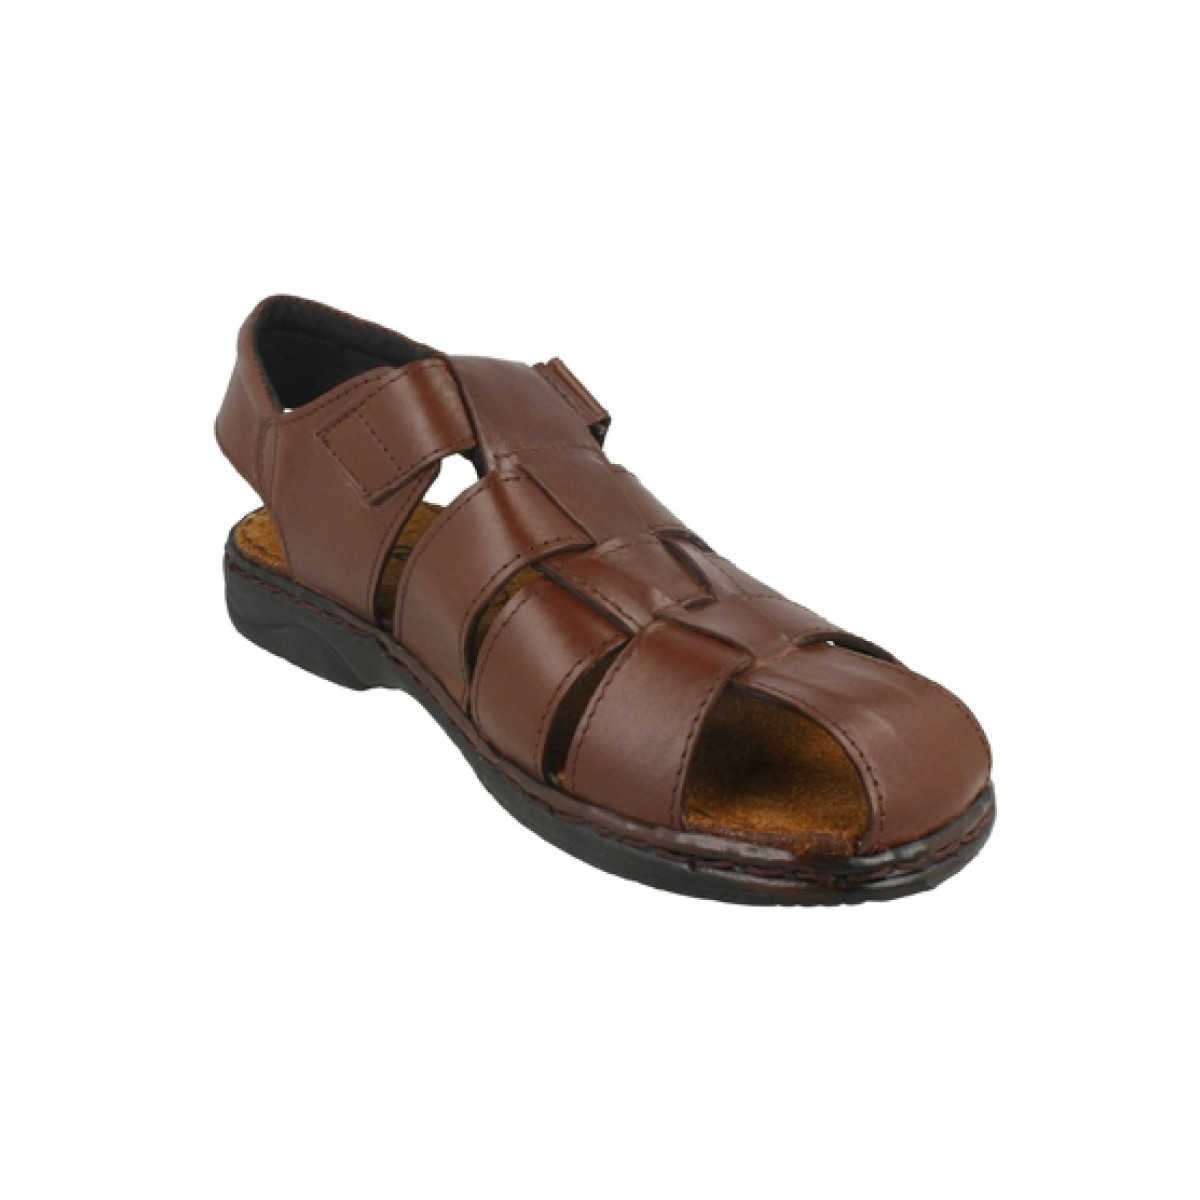 MOZAX Casual Leather Sandal For Men Brown (0004)